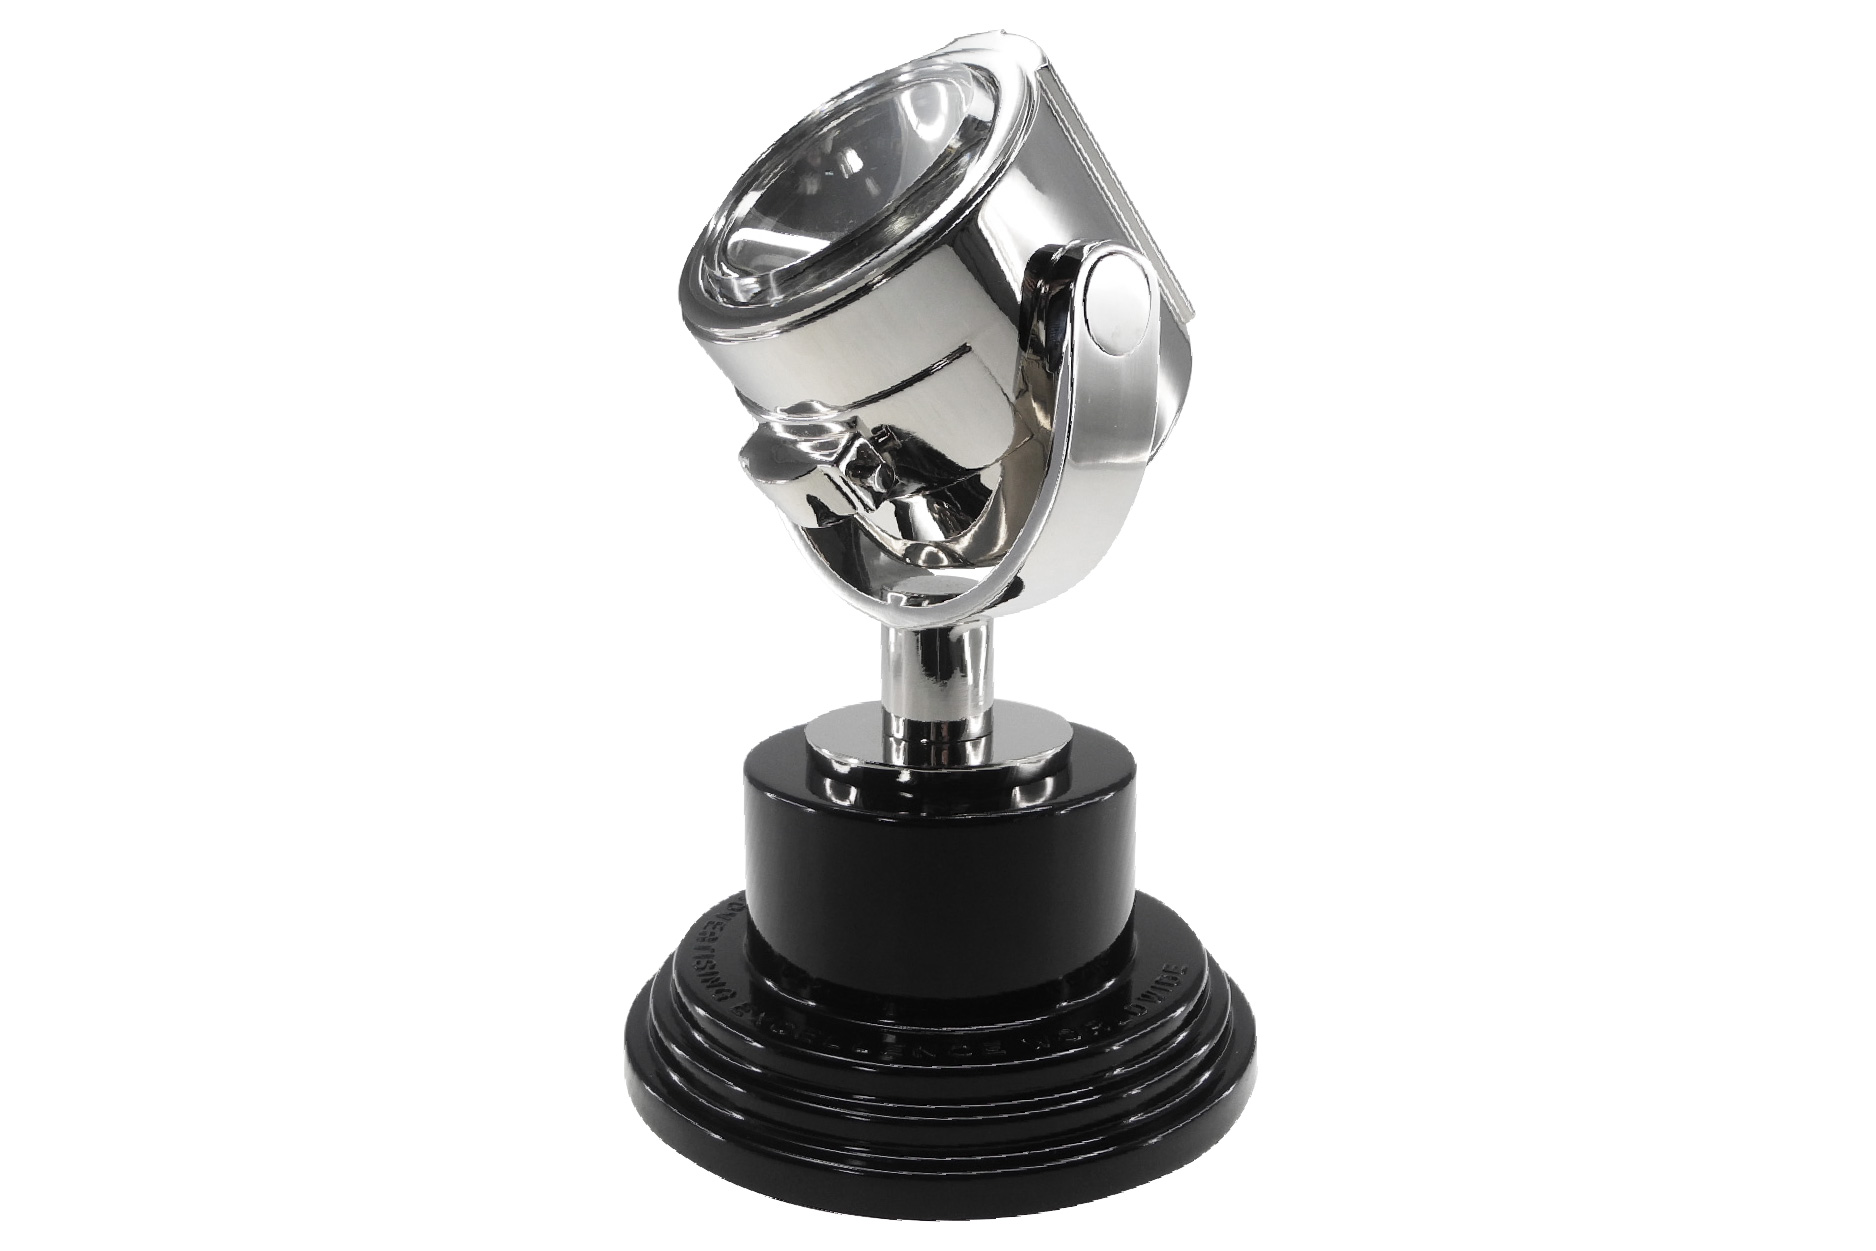 Realistic searchlight trophy form designed by Society Awards